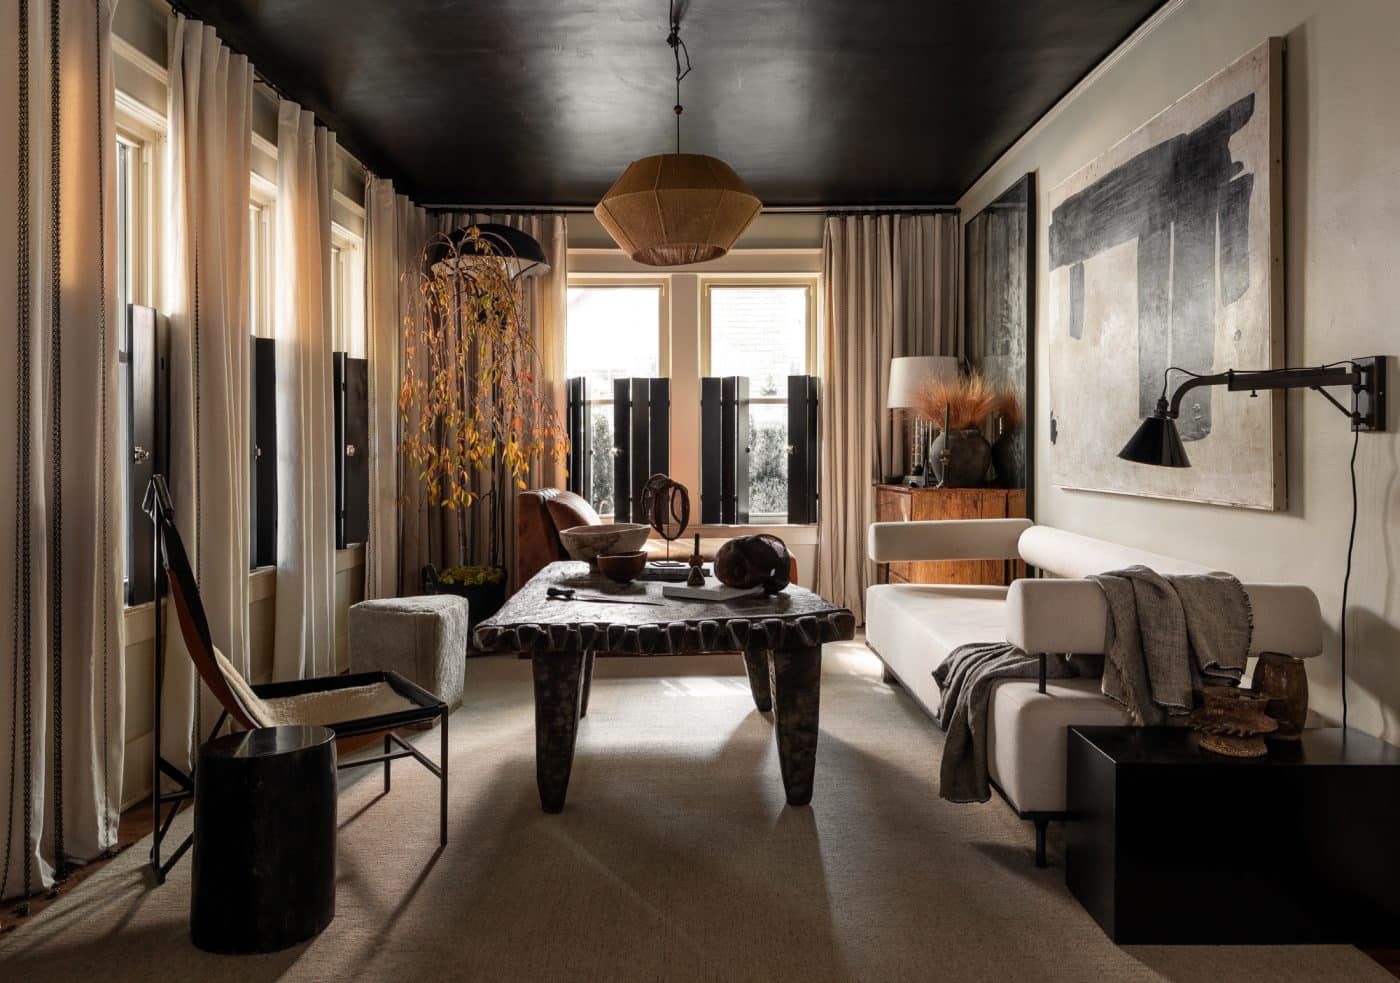 Living room space designed by Sean Anderson